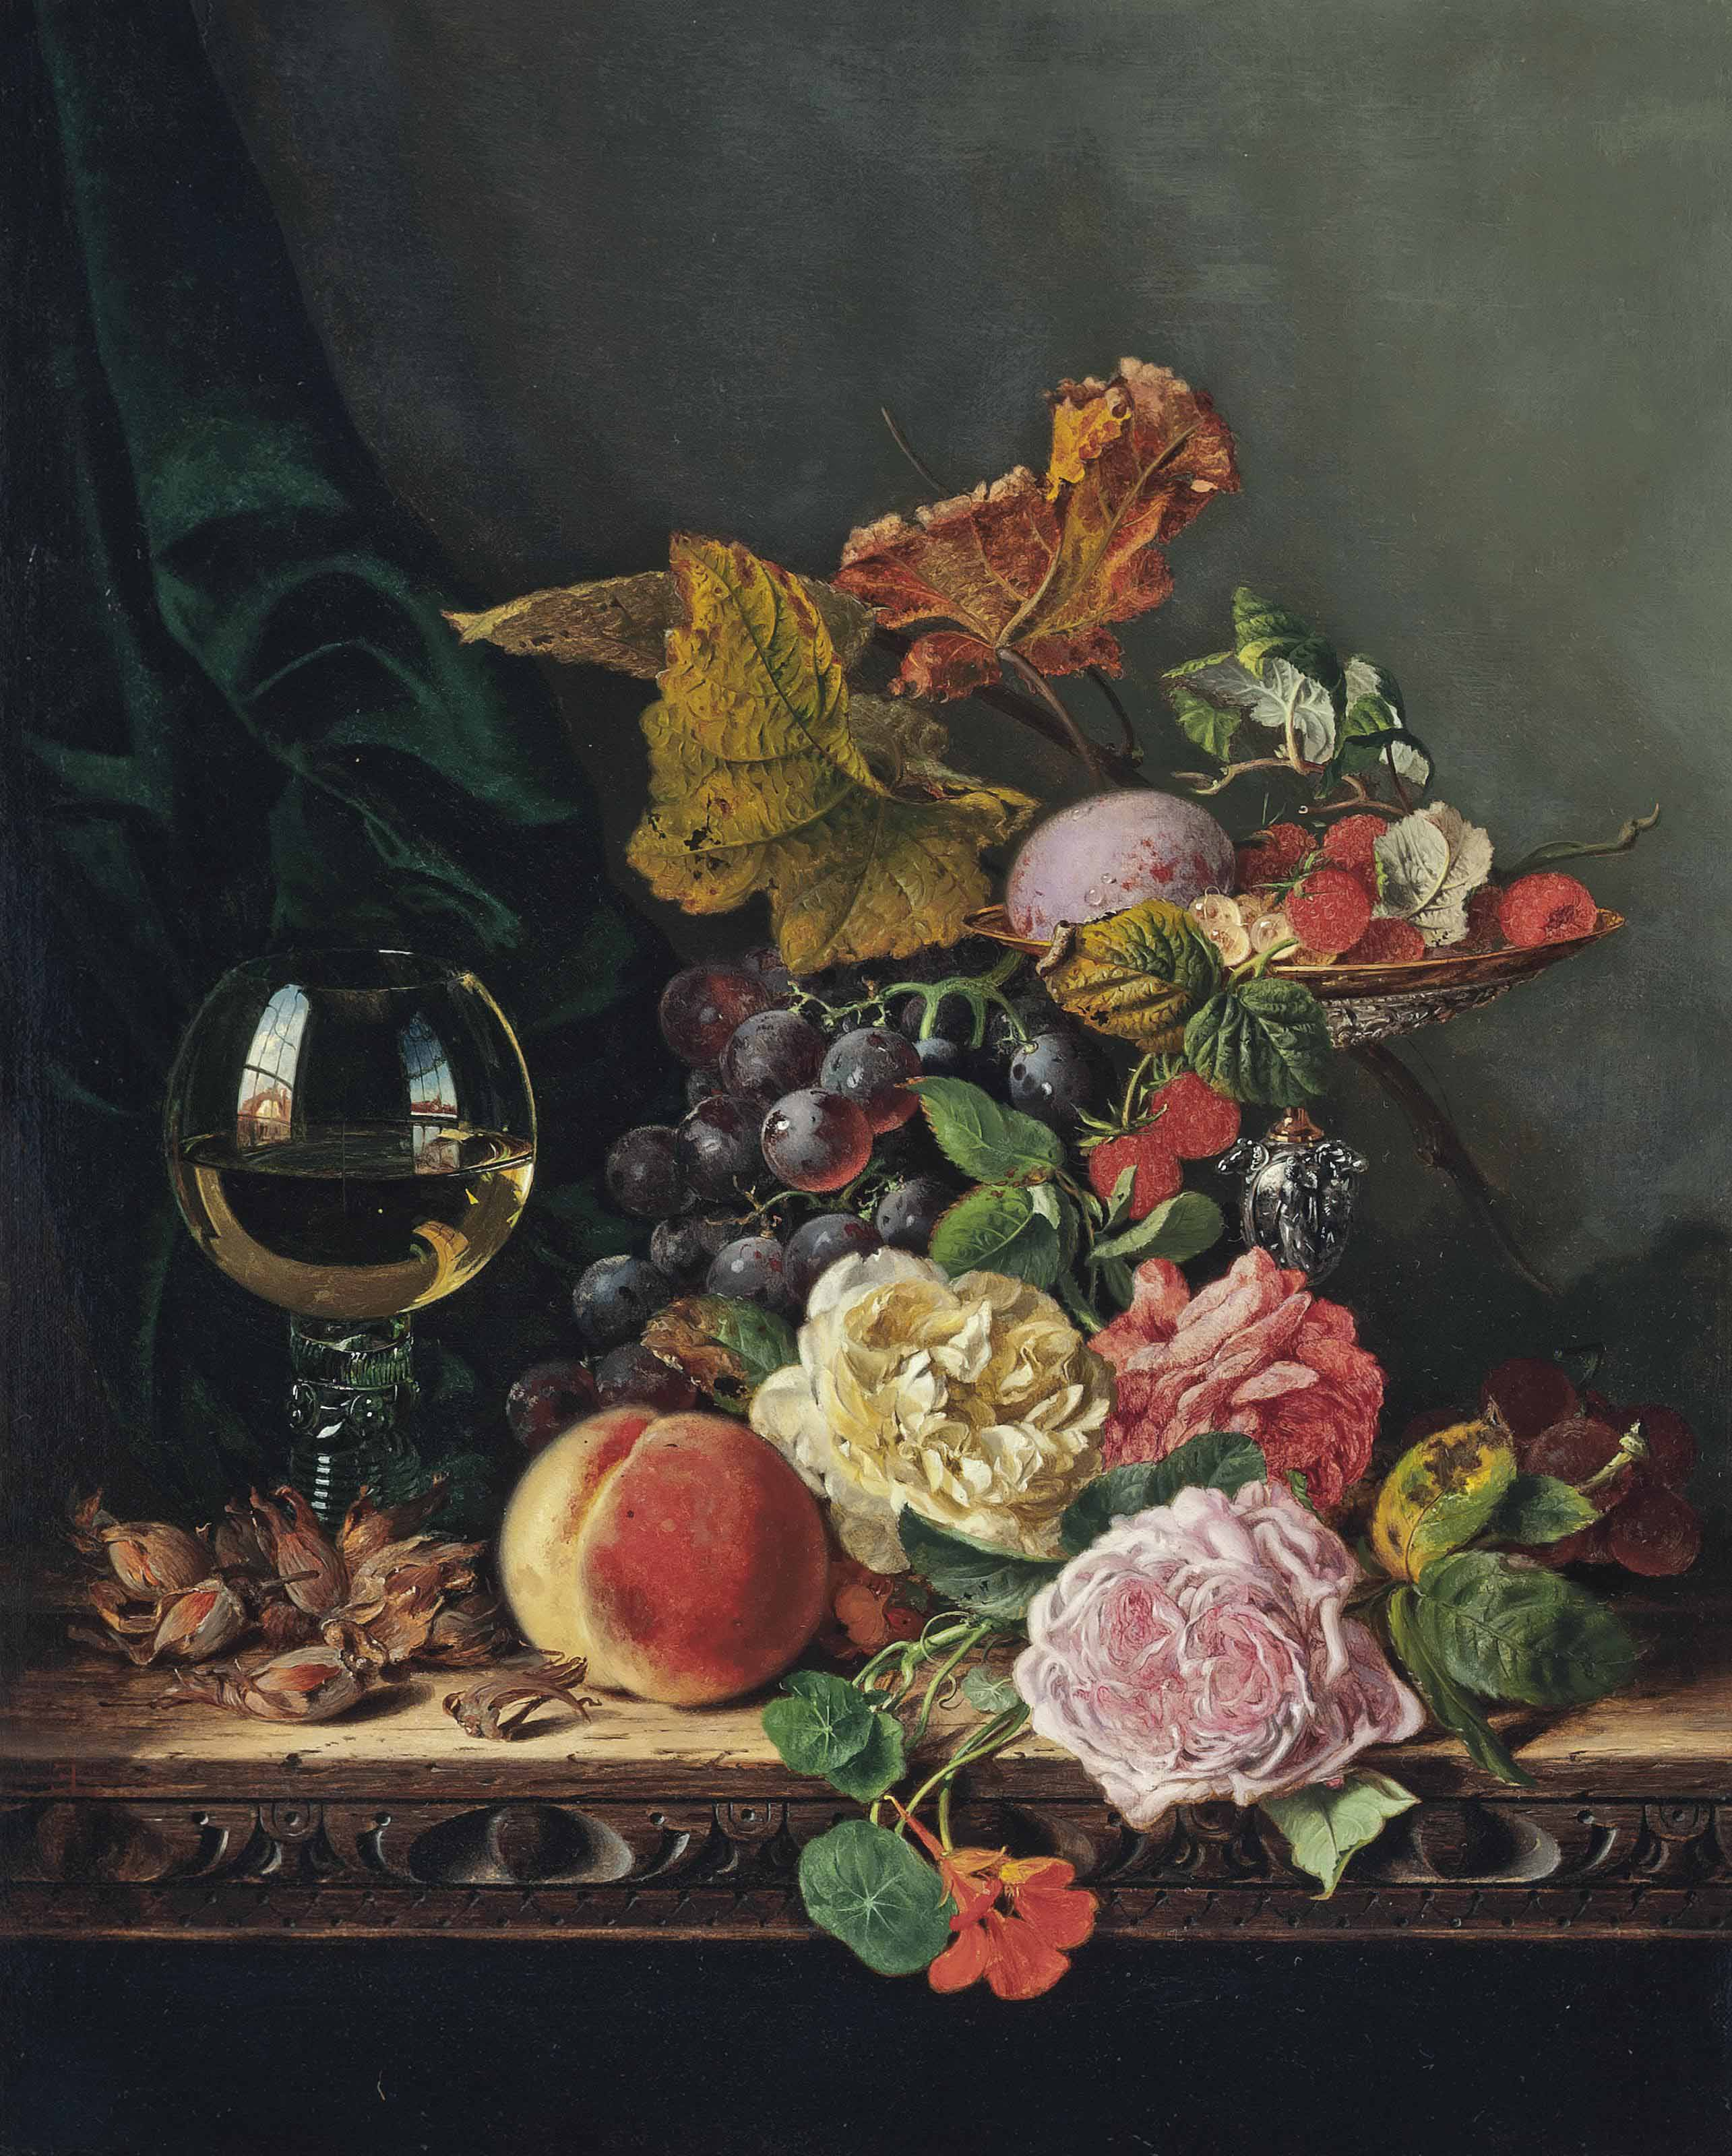 Cobnuts, a roemer, a peach, roses, nasturtiums, raspberries, a speckled egg, black grapes, white currants, and a tazza, on a carved wooden ledge